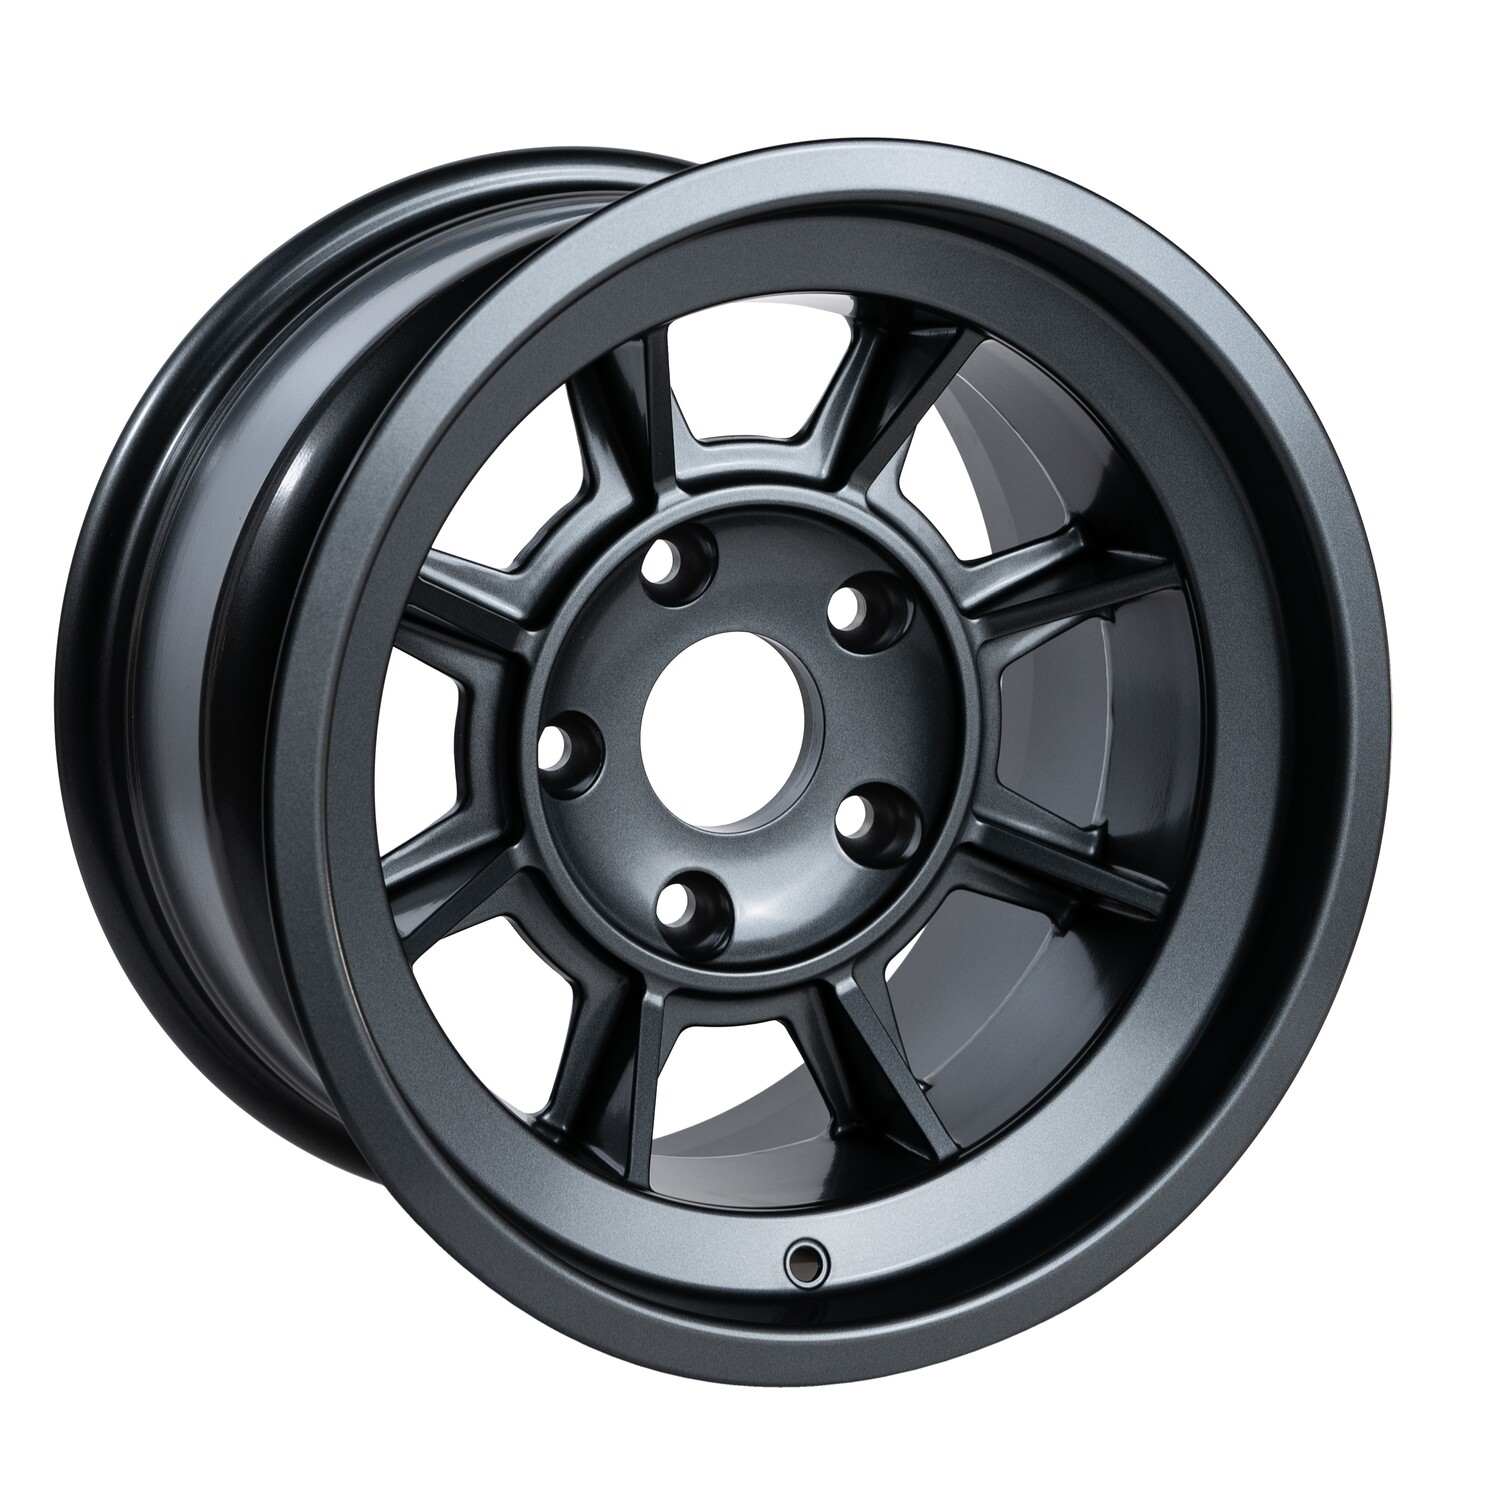 PAG1590P Satin Anthracite 15 x 9